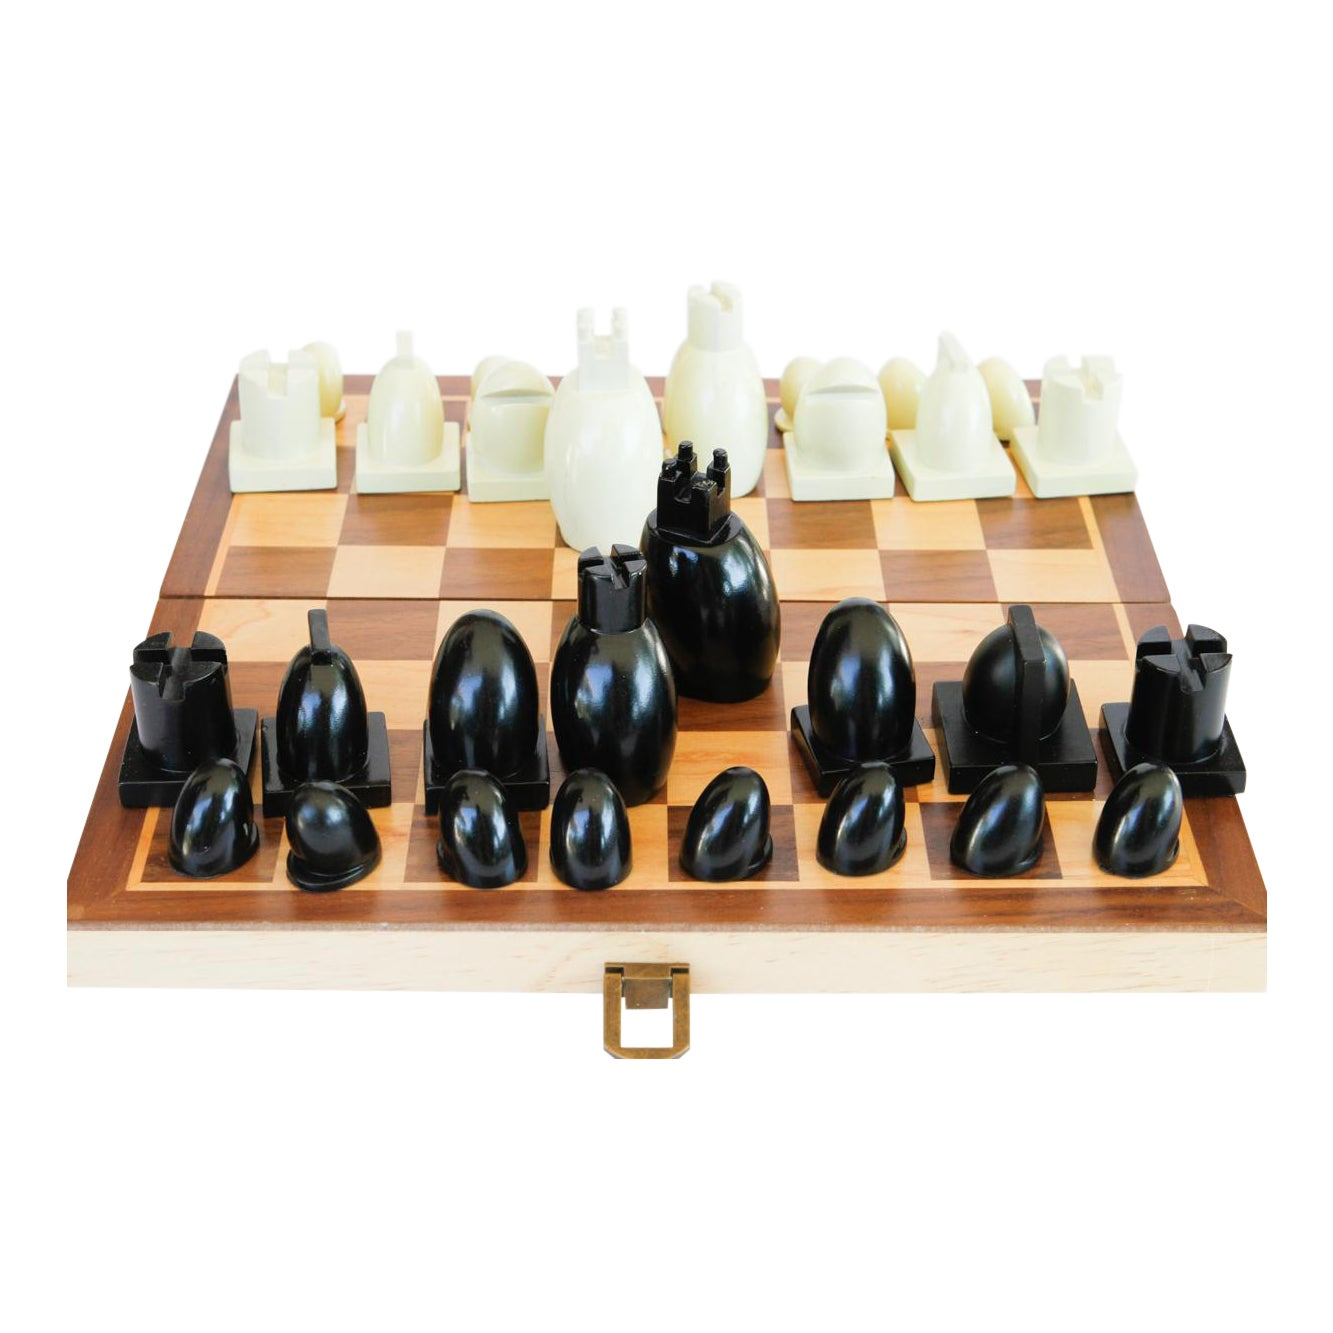 Famed Architect Michael Graves Modern Chess Set 33 Pieces Chairish